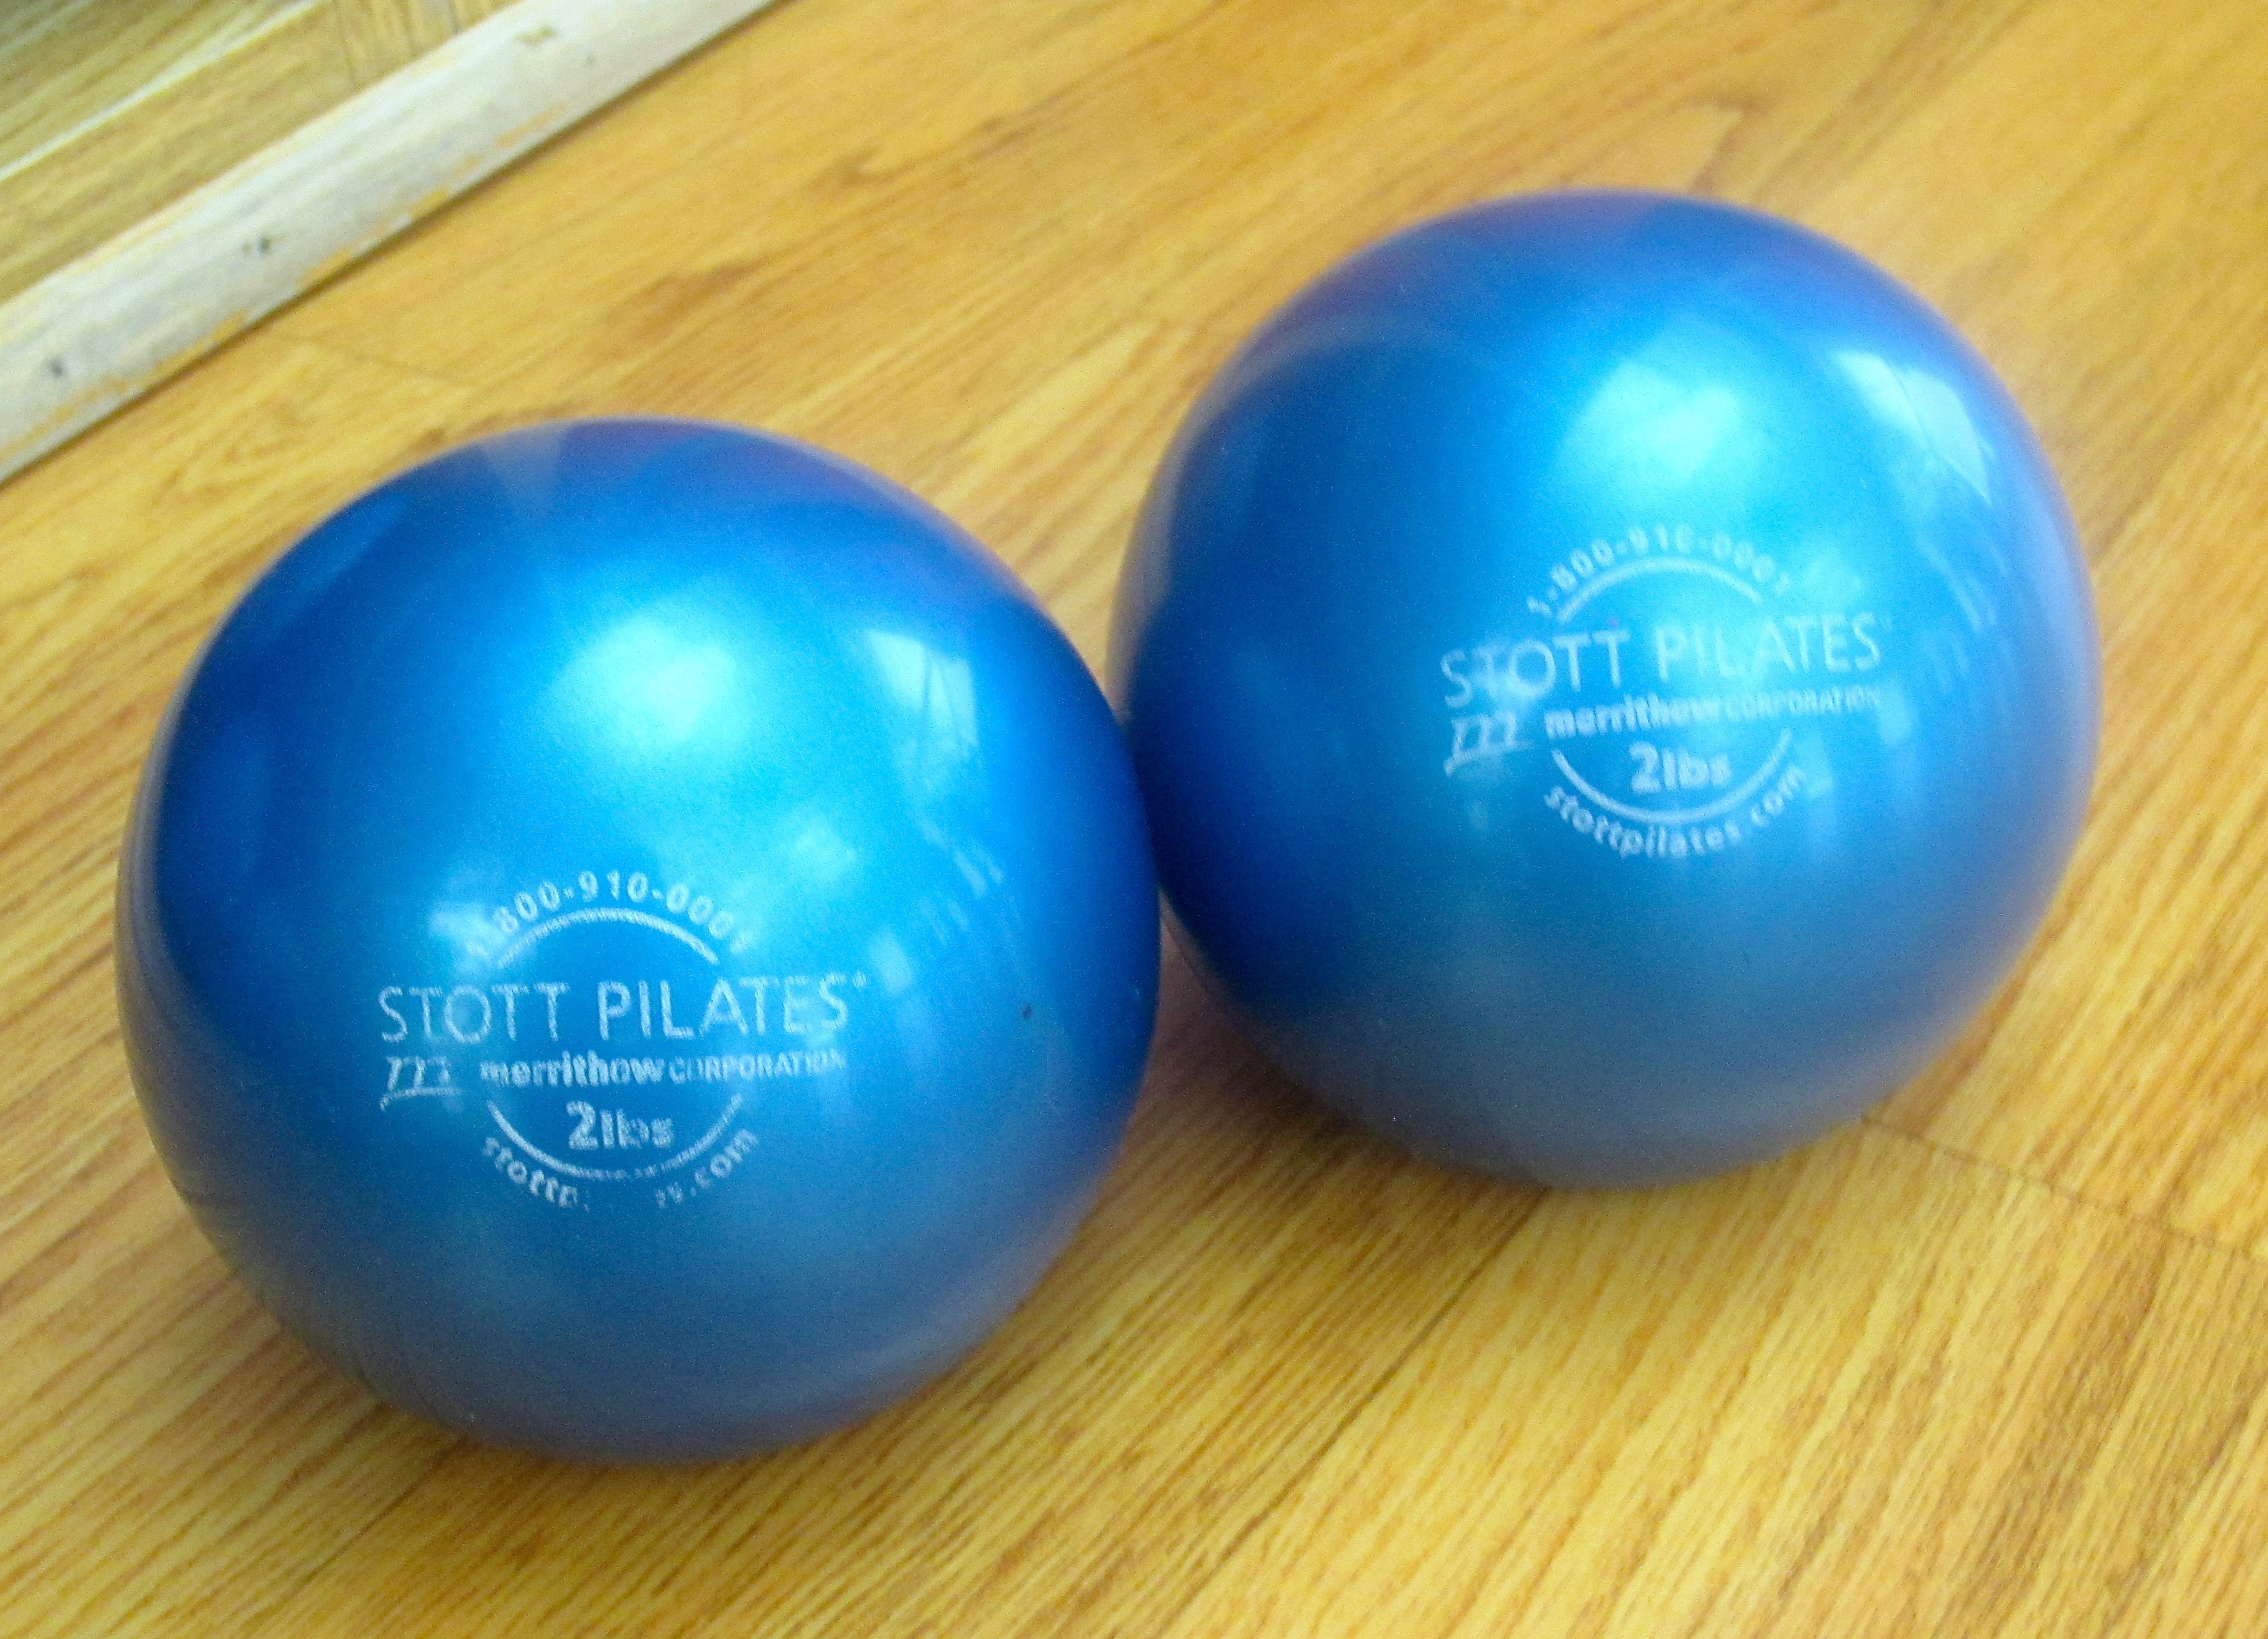 Stott pilates weights